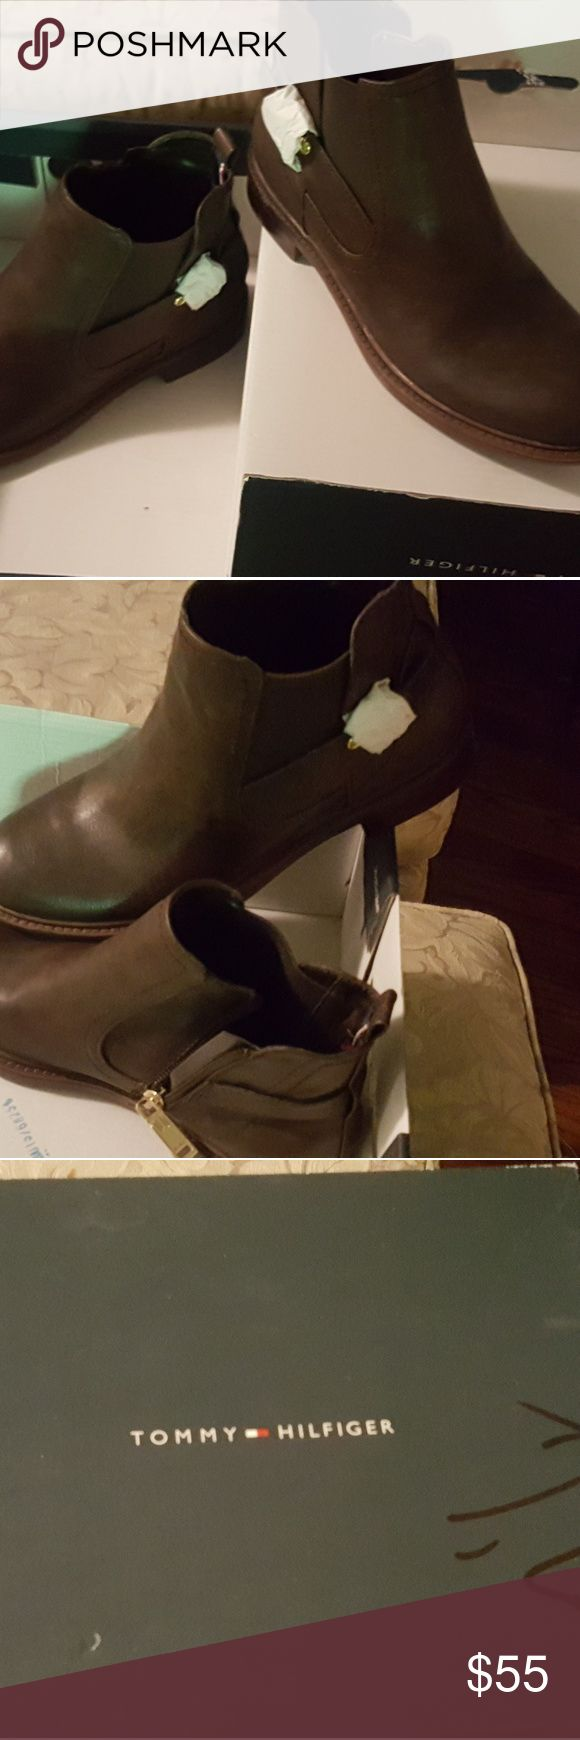 Tommy Hilfiger ankle boots Brand new.   Chocolate espresso color Tommy Hilfiger Shoes Ankle Boots & Booties